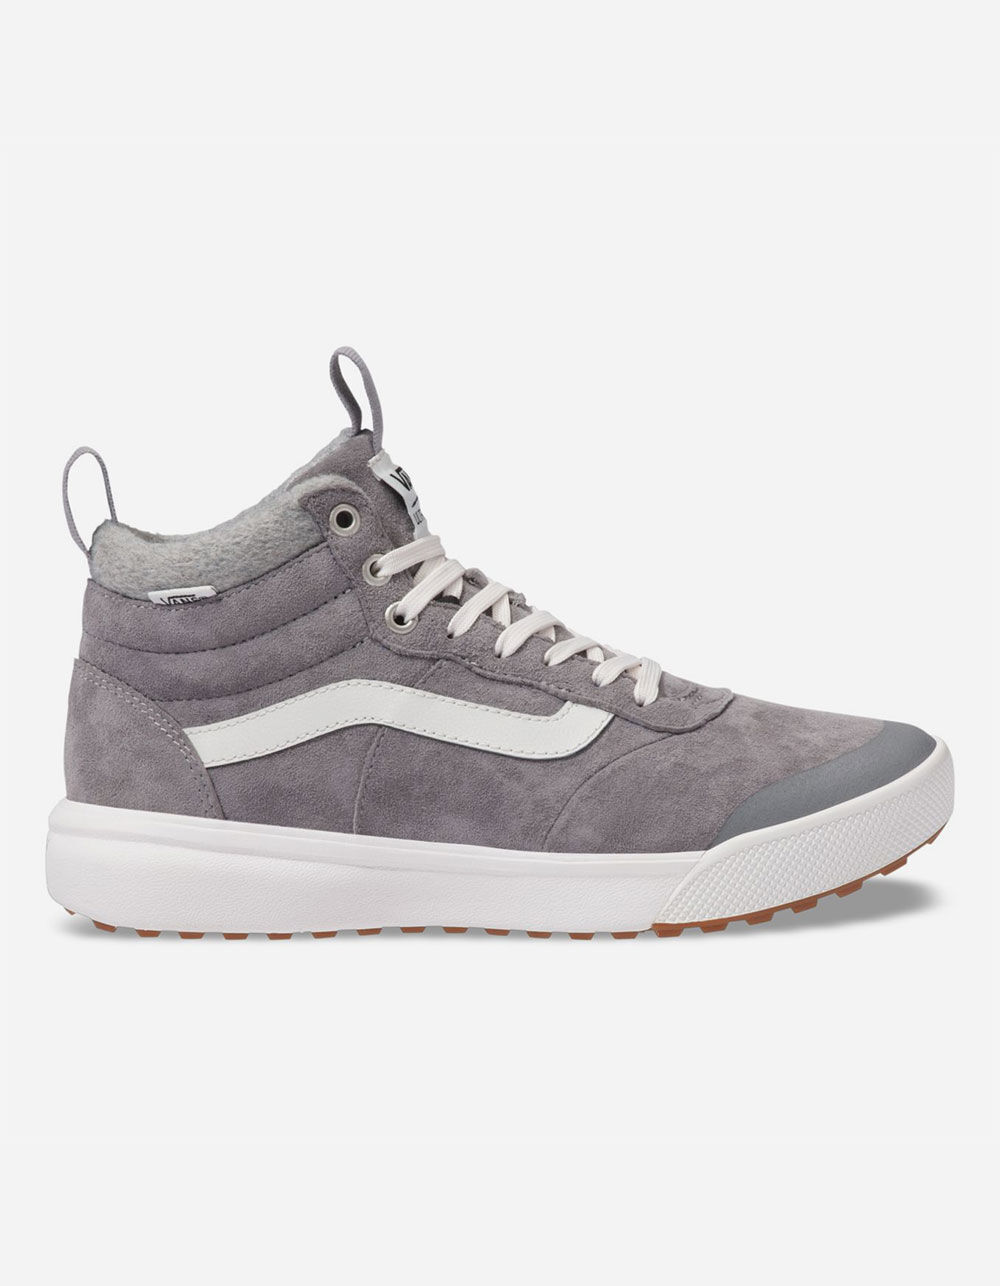 VANS UltraRange HI MTE Gray Shoes